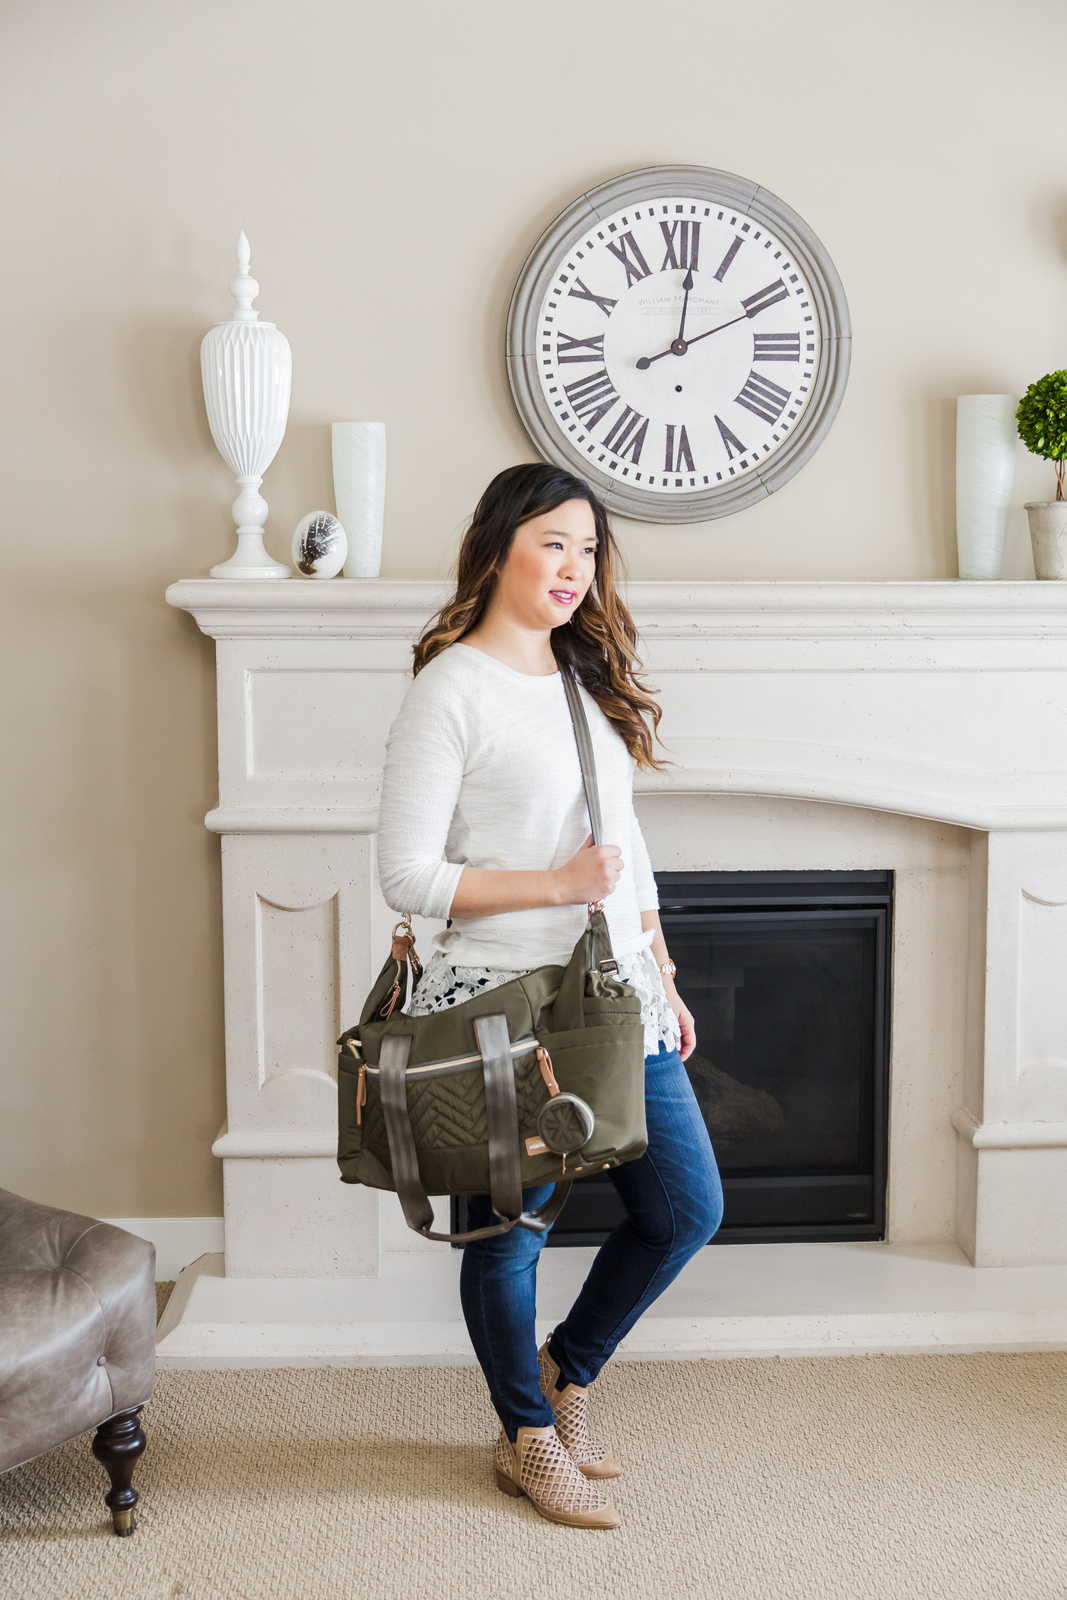 designer diaper bags review skip hop suite sandy a la mode. Black Bedroom Furniture Sets. Home Design Ideas